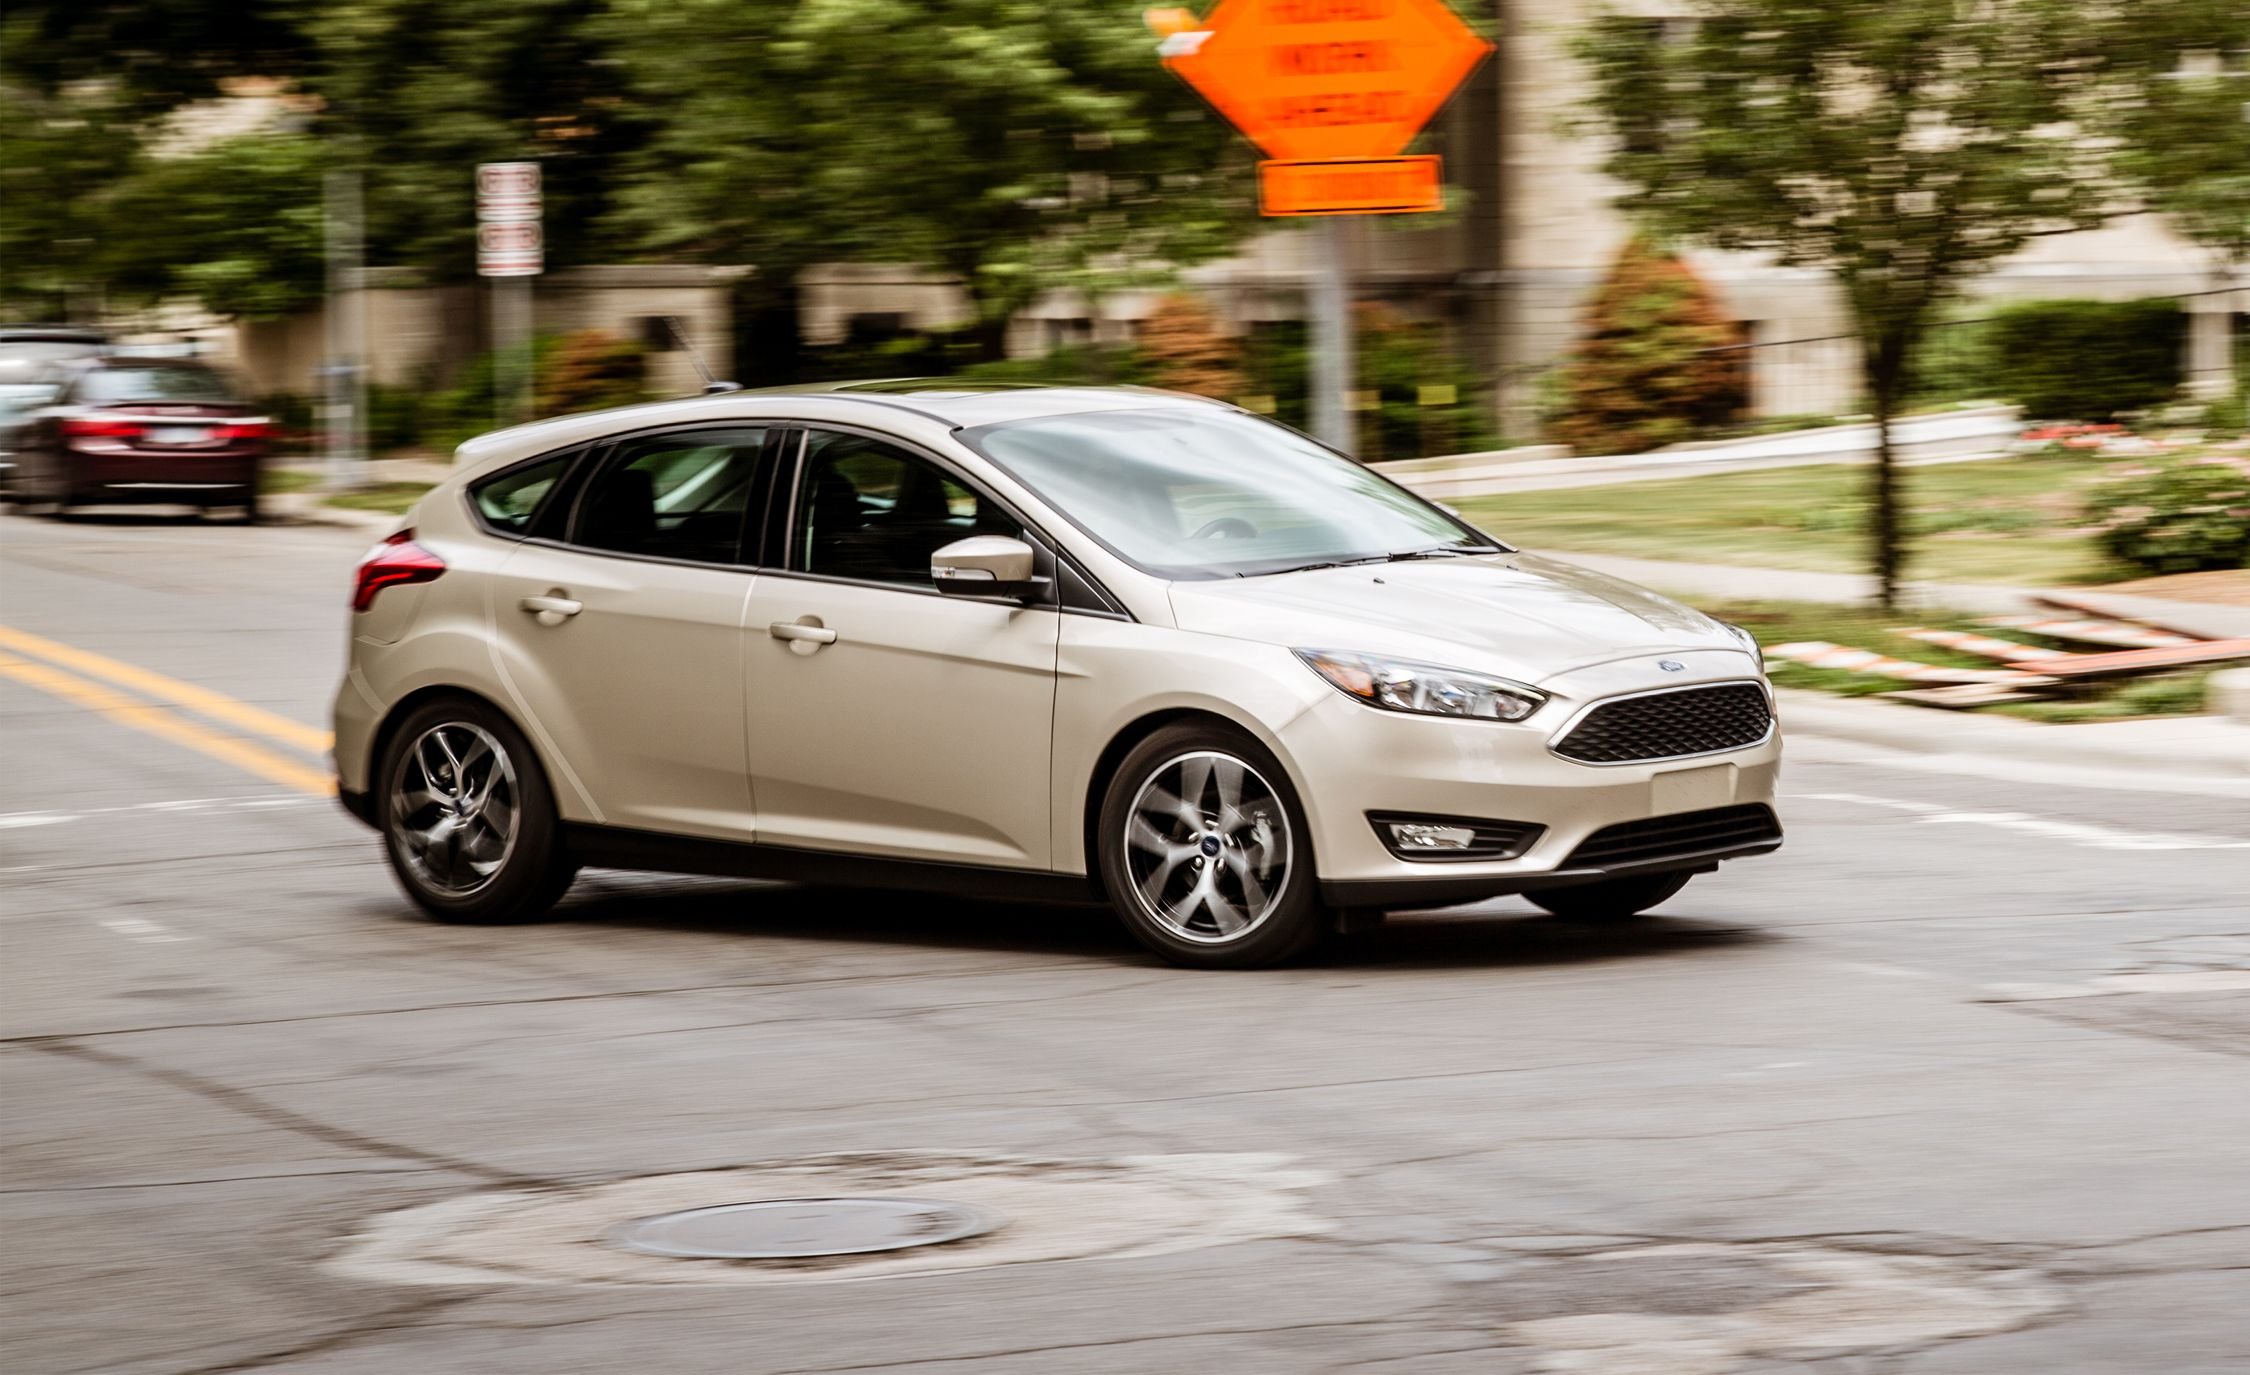 Ford Focus User Manual 2017 Various Owner Guide 2014 Owners Sedan And Hatchback Review Car Driver Rh Caranddriver Com